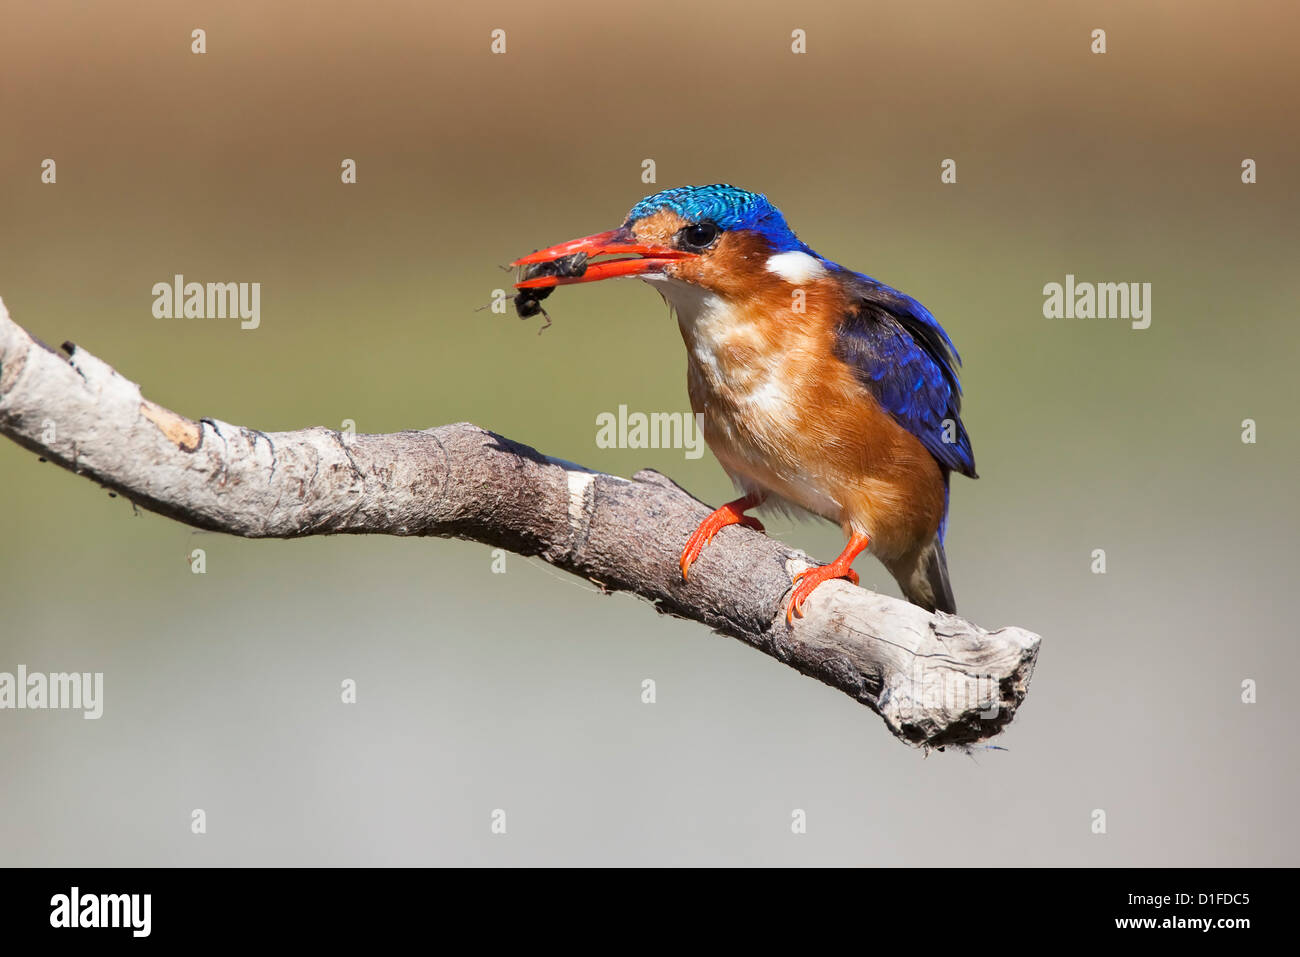 Malachite kingfisher (Alcedo cristata) with beetle, Intaka Island, Cape Town, South Africa, Africa - Stock Image